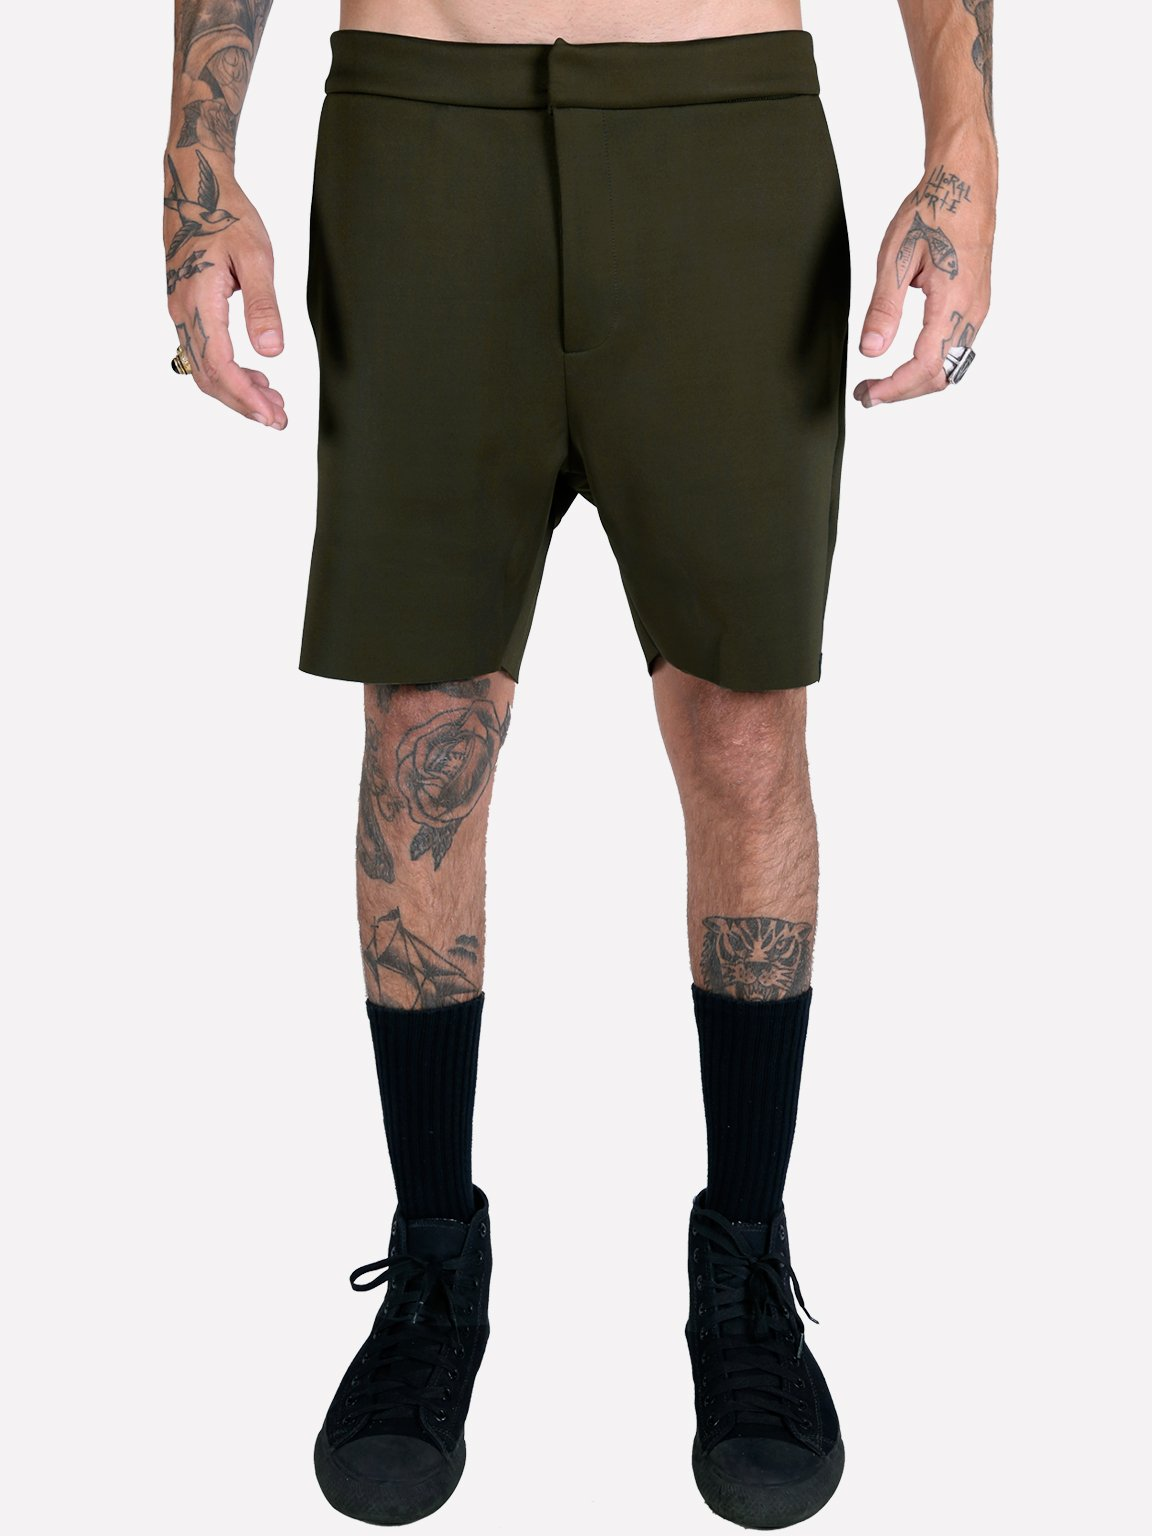 Foto do Shorts Oliv Walkshort Neoprene // Militar